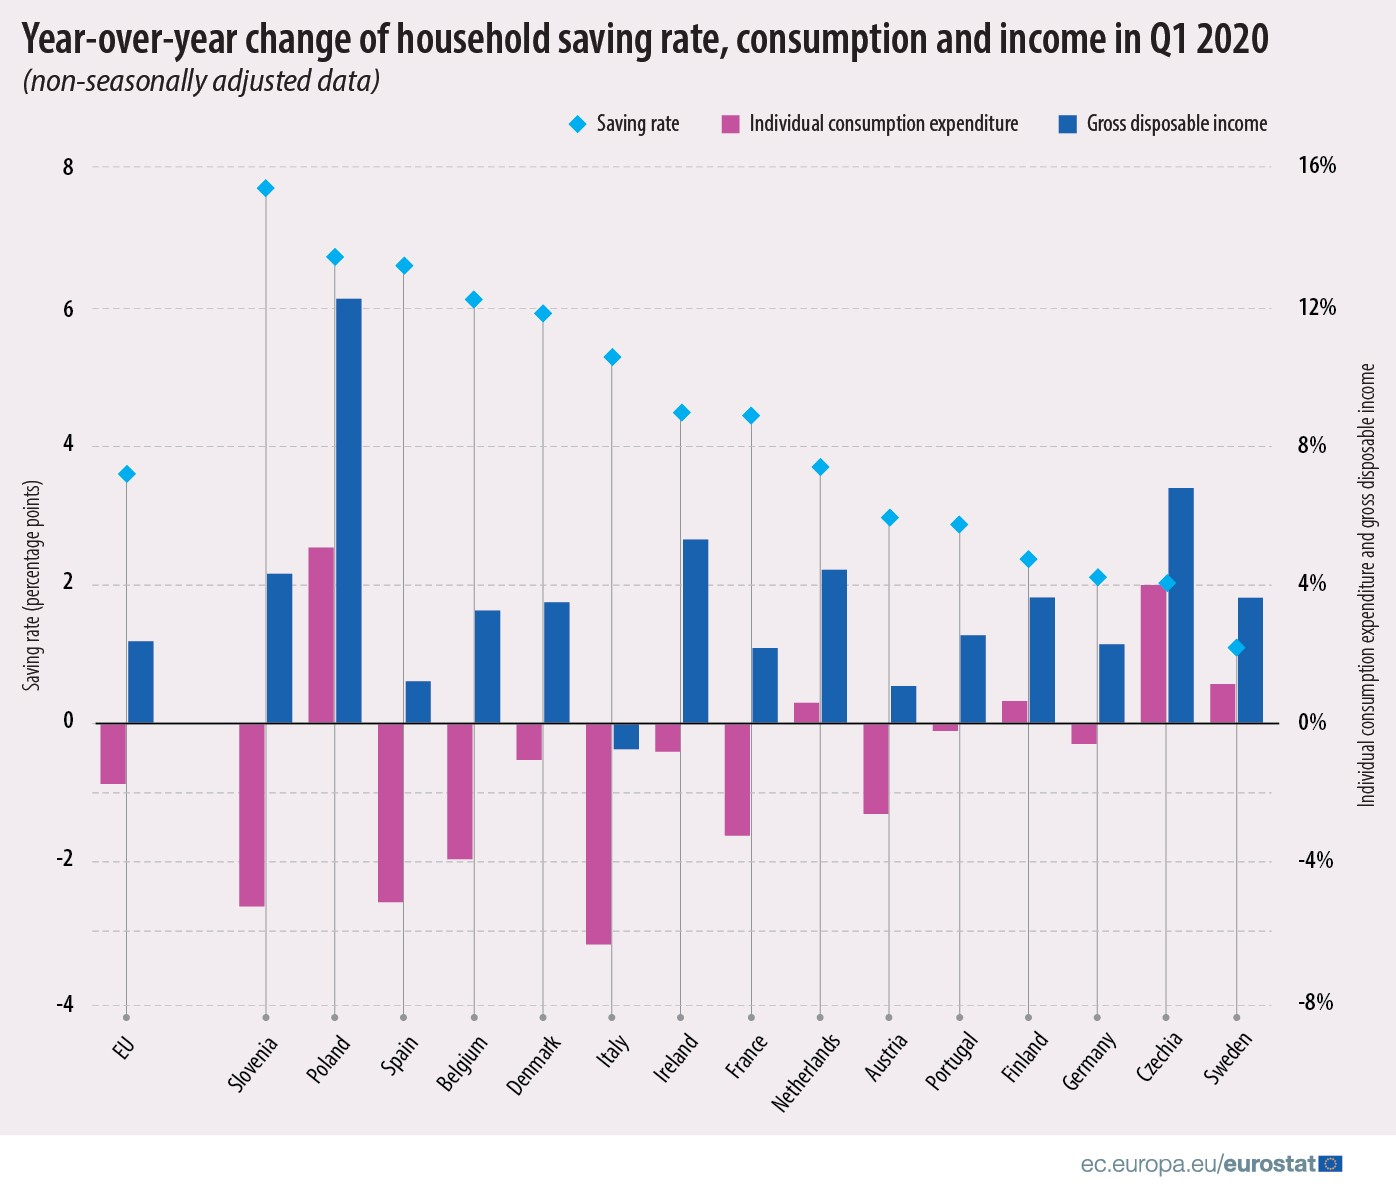 Year-over-year change of household saving rate, consumption and income in Q1 2020